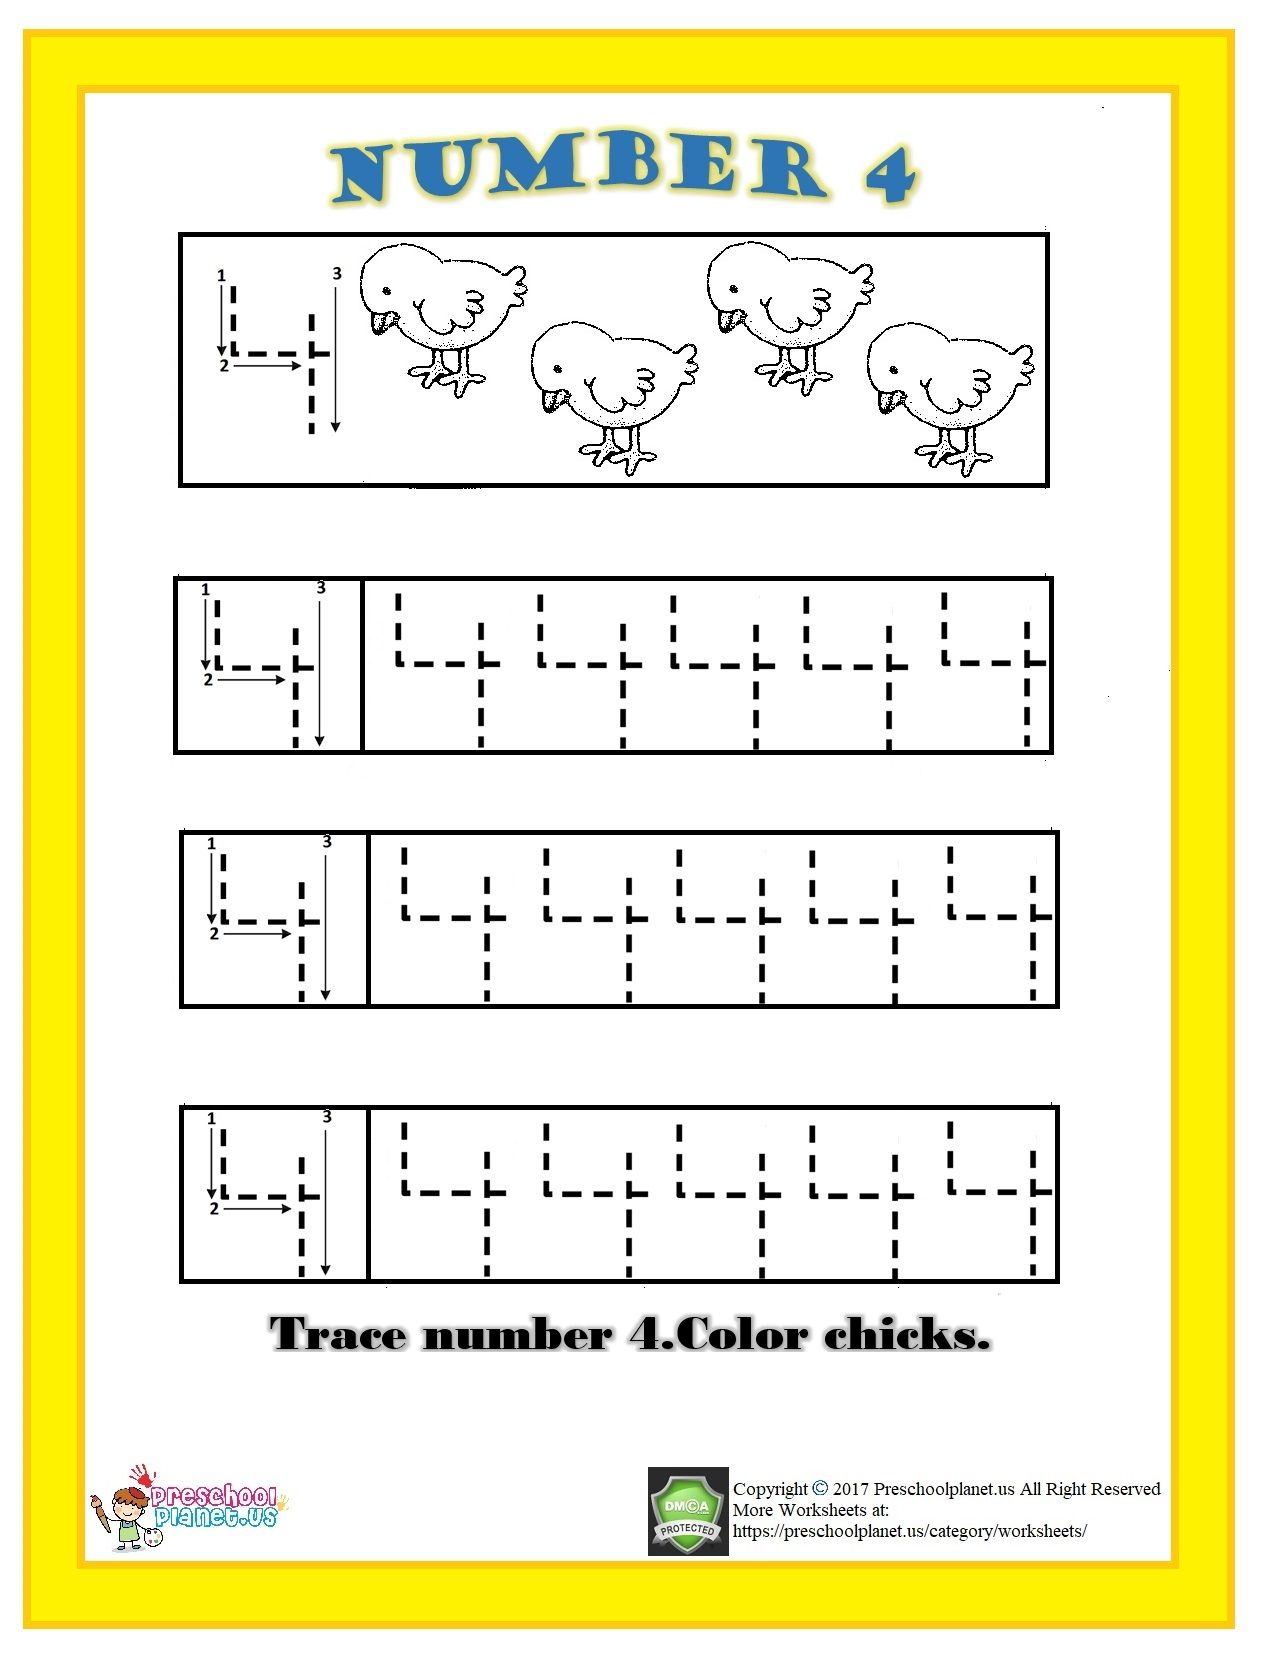 Number 4 Trace Worksheet For Kids